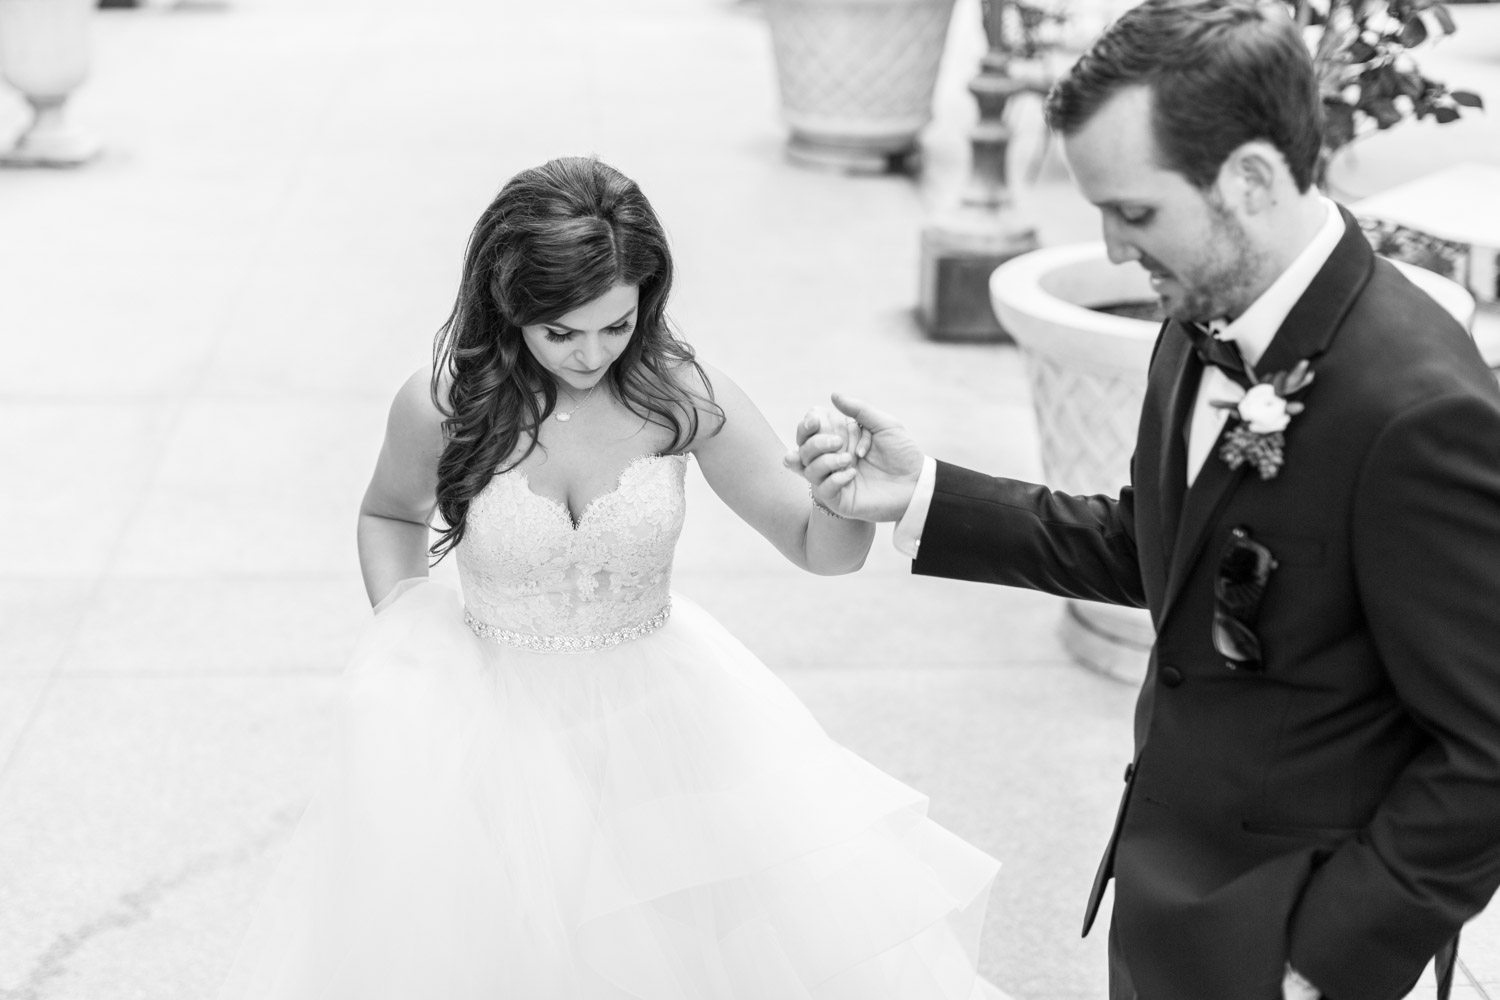 Groom helping bride up the stairs, Adorable candid wedding photography in black and white, Cavin Elizabeth Photography